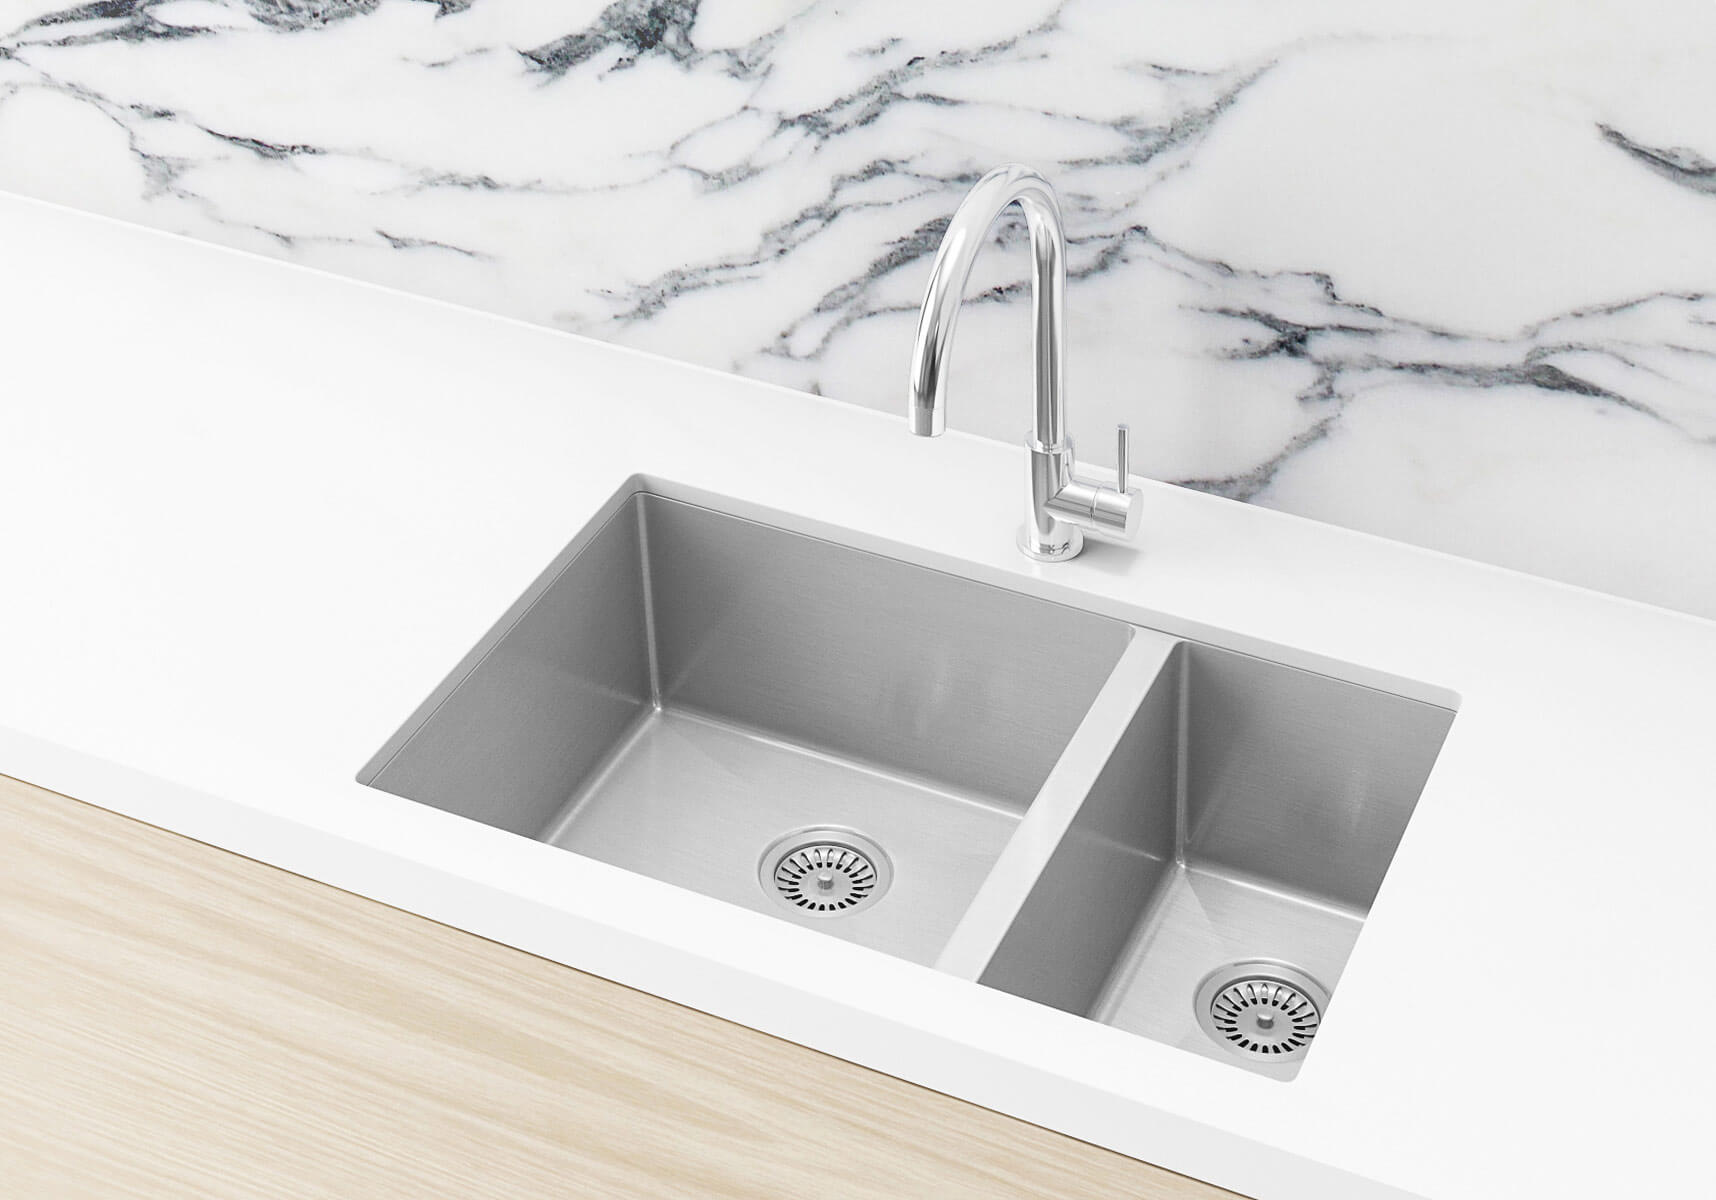 Stainless Steel Double Bowl PVD Kitchen Sink - Brushed Nickel (Nano)  670x440x200mm